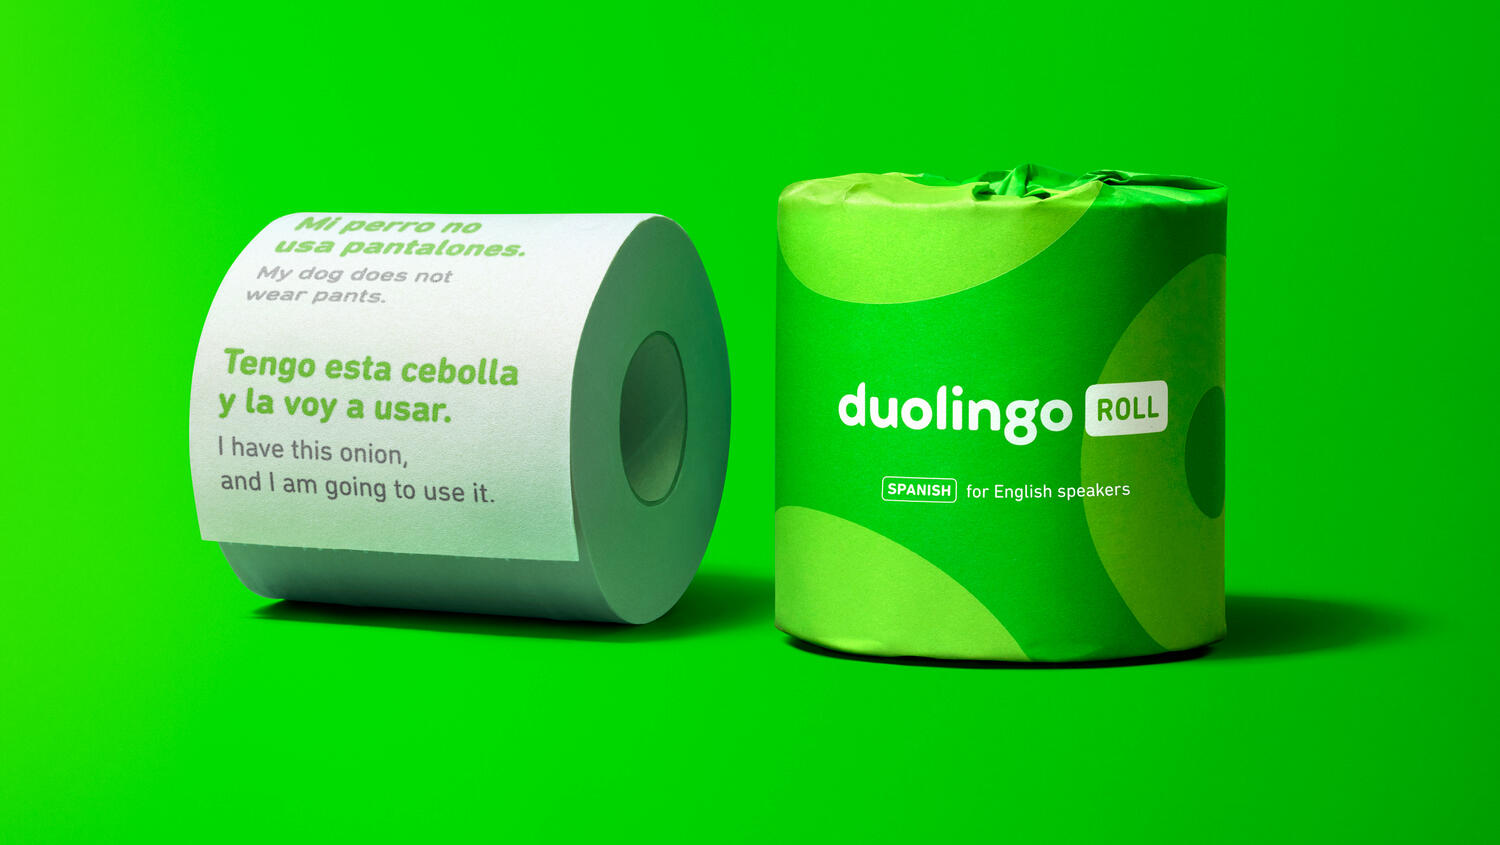 duolingo-roll-spanish-wrapped-unwrapped-1x1